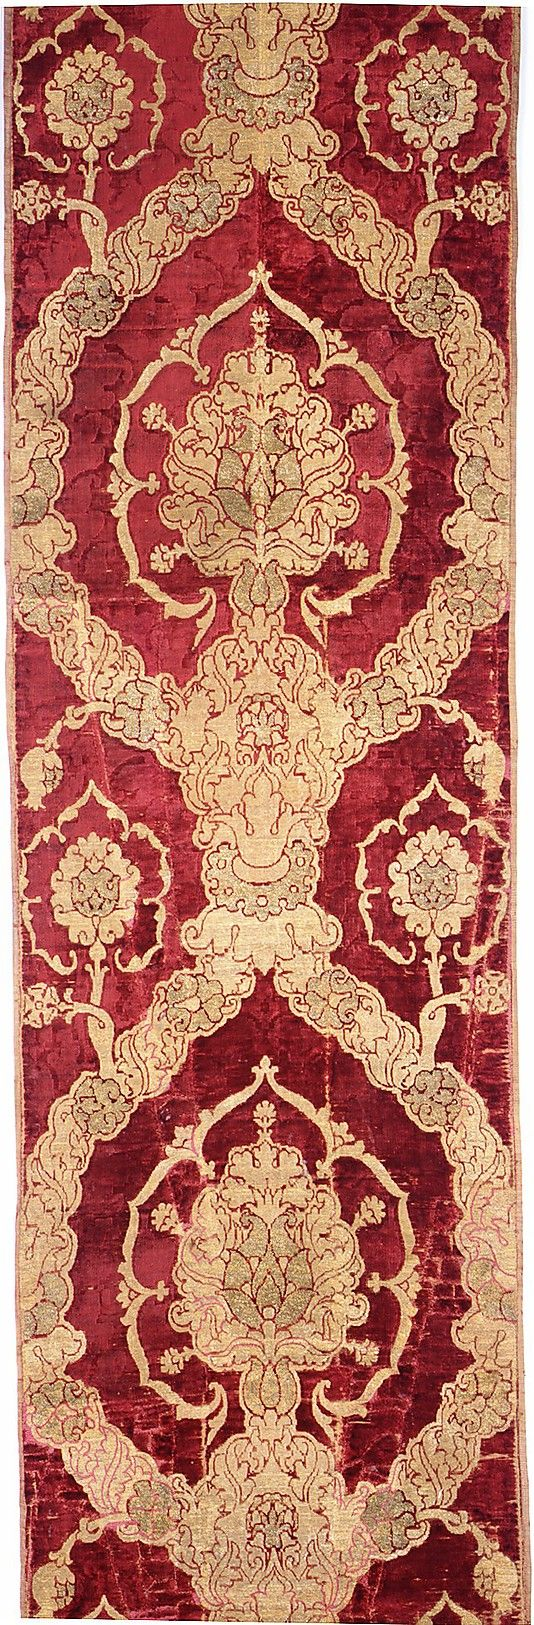 Length of Velvet. Late 15th c. Venice. W 23in L 12ft 4in.  Silk; metal thread. Met Museum